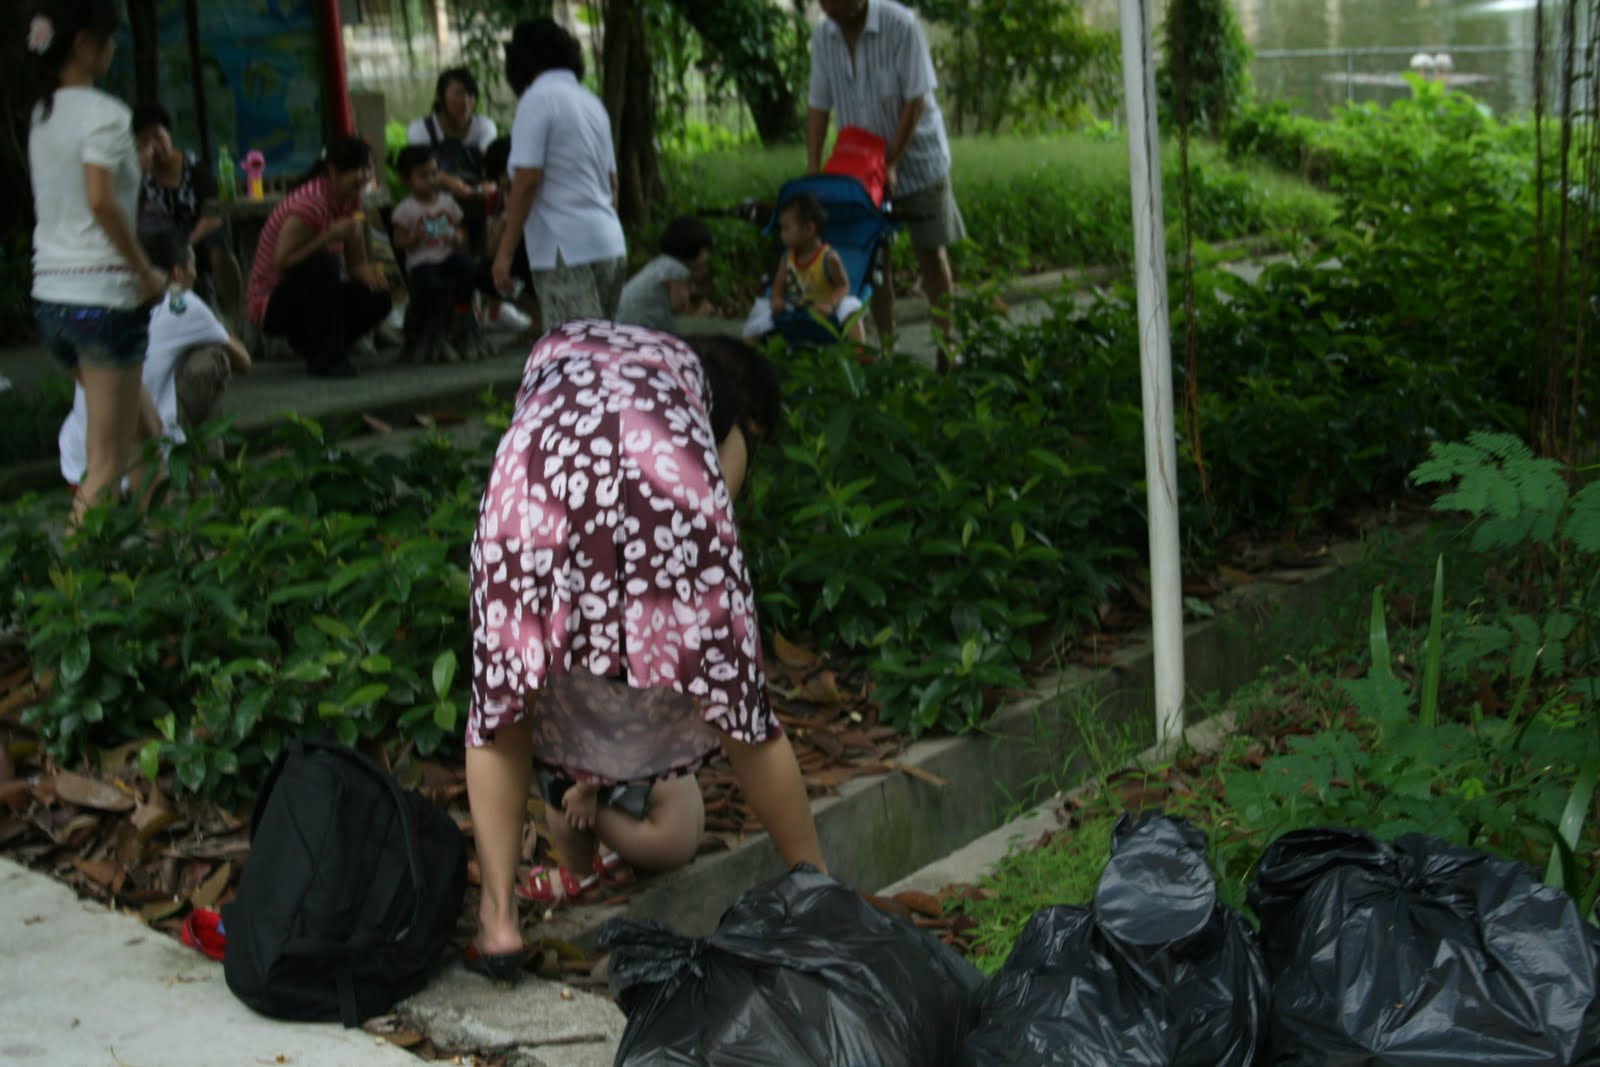 PEE ON ALLSITUATION IN CHINA